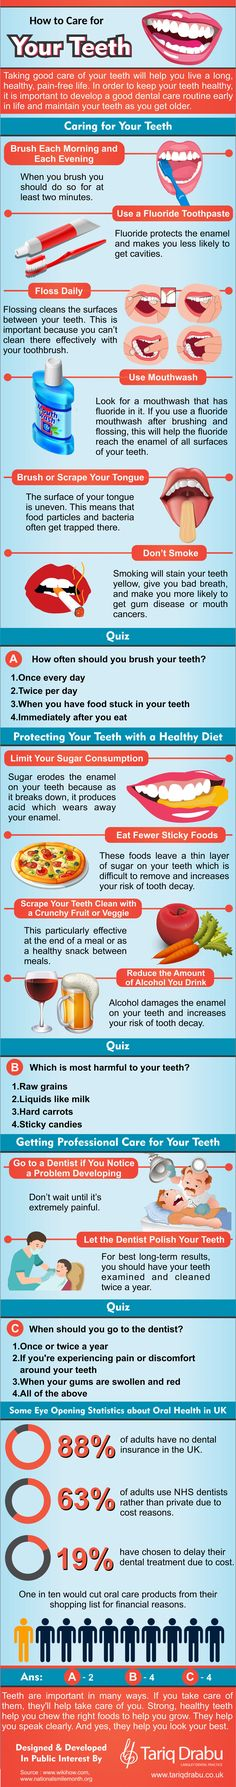 How to Care for Your Teeth